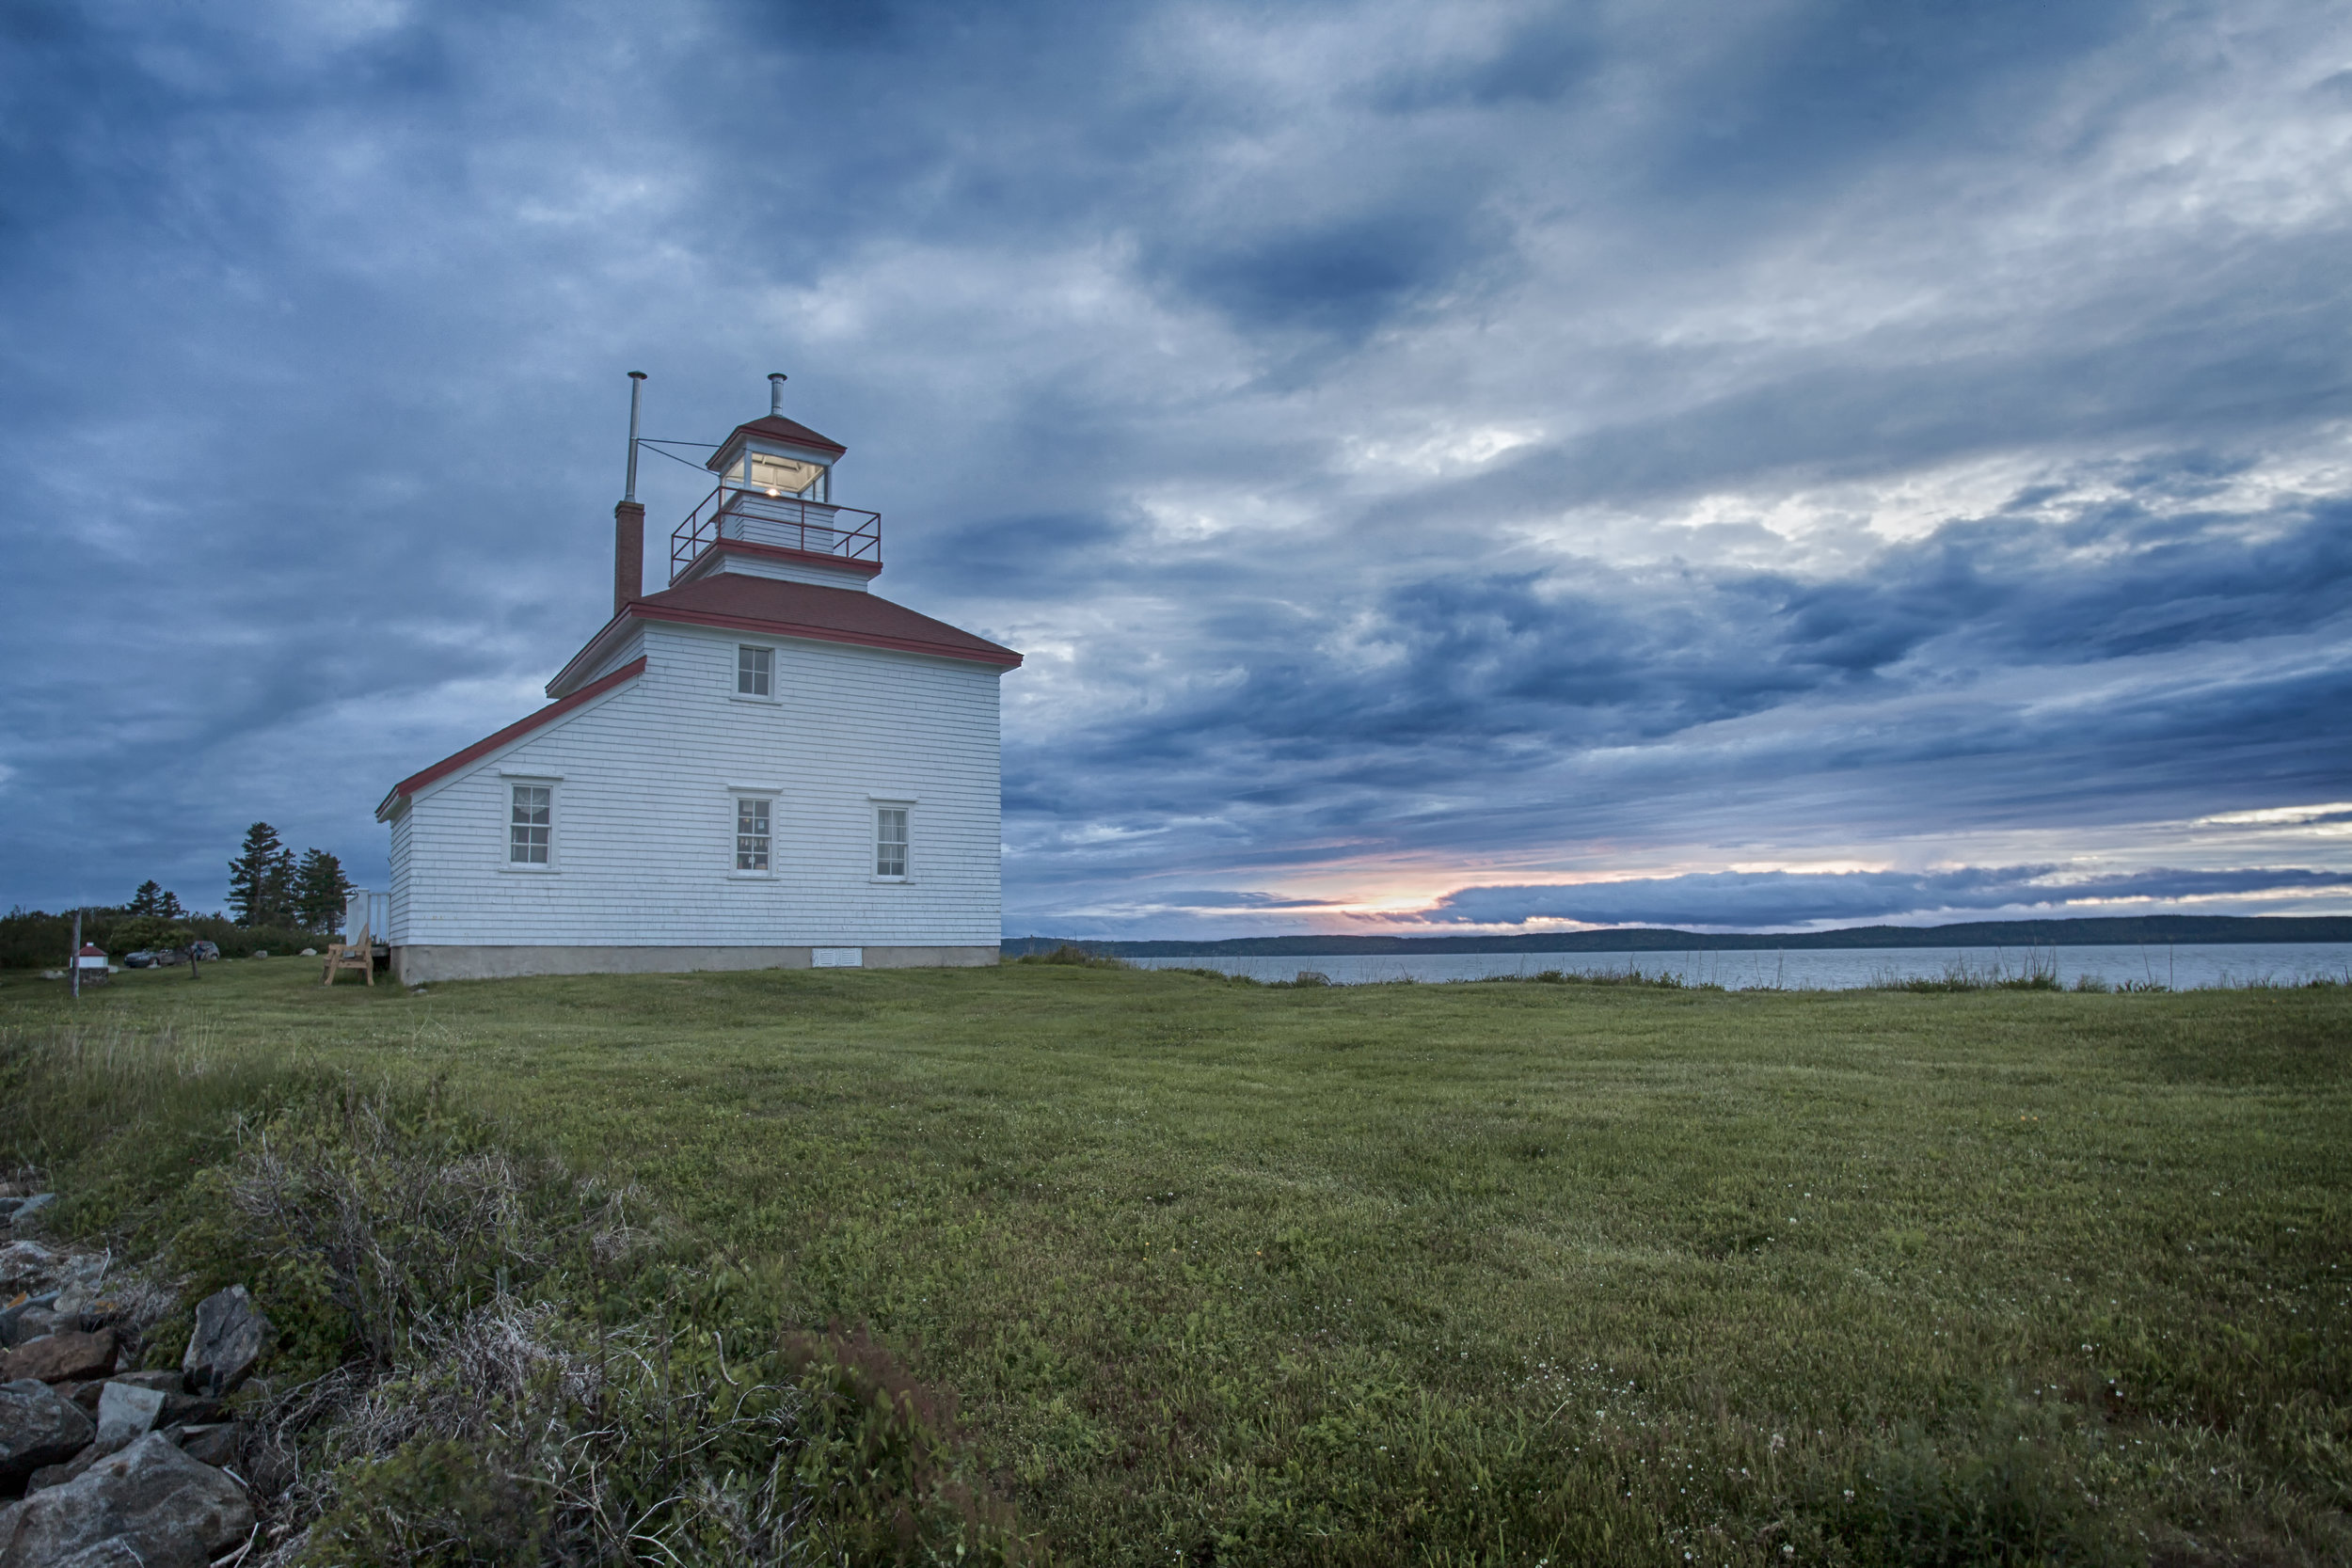 Gilberts Cove Lighthouse - Across the Blue Planet